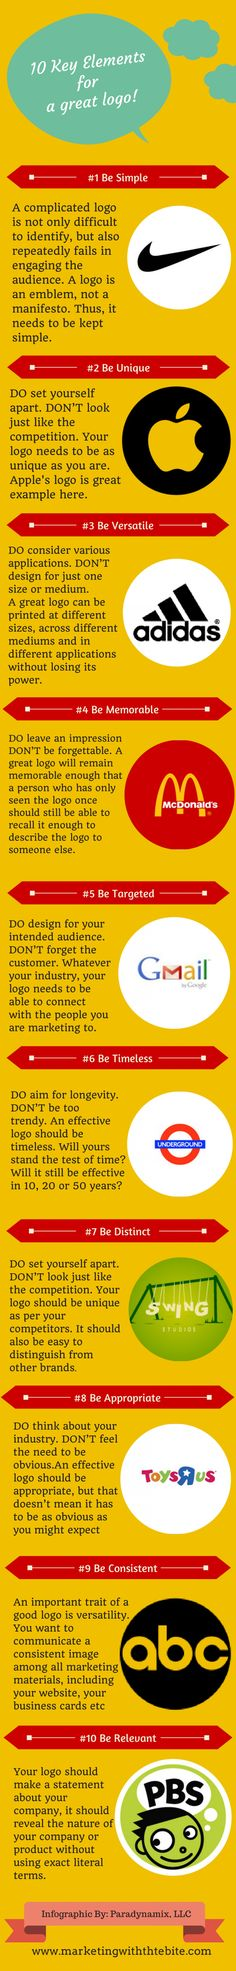 10 Key Elements for a Great #Logo